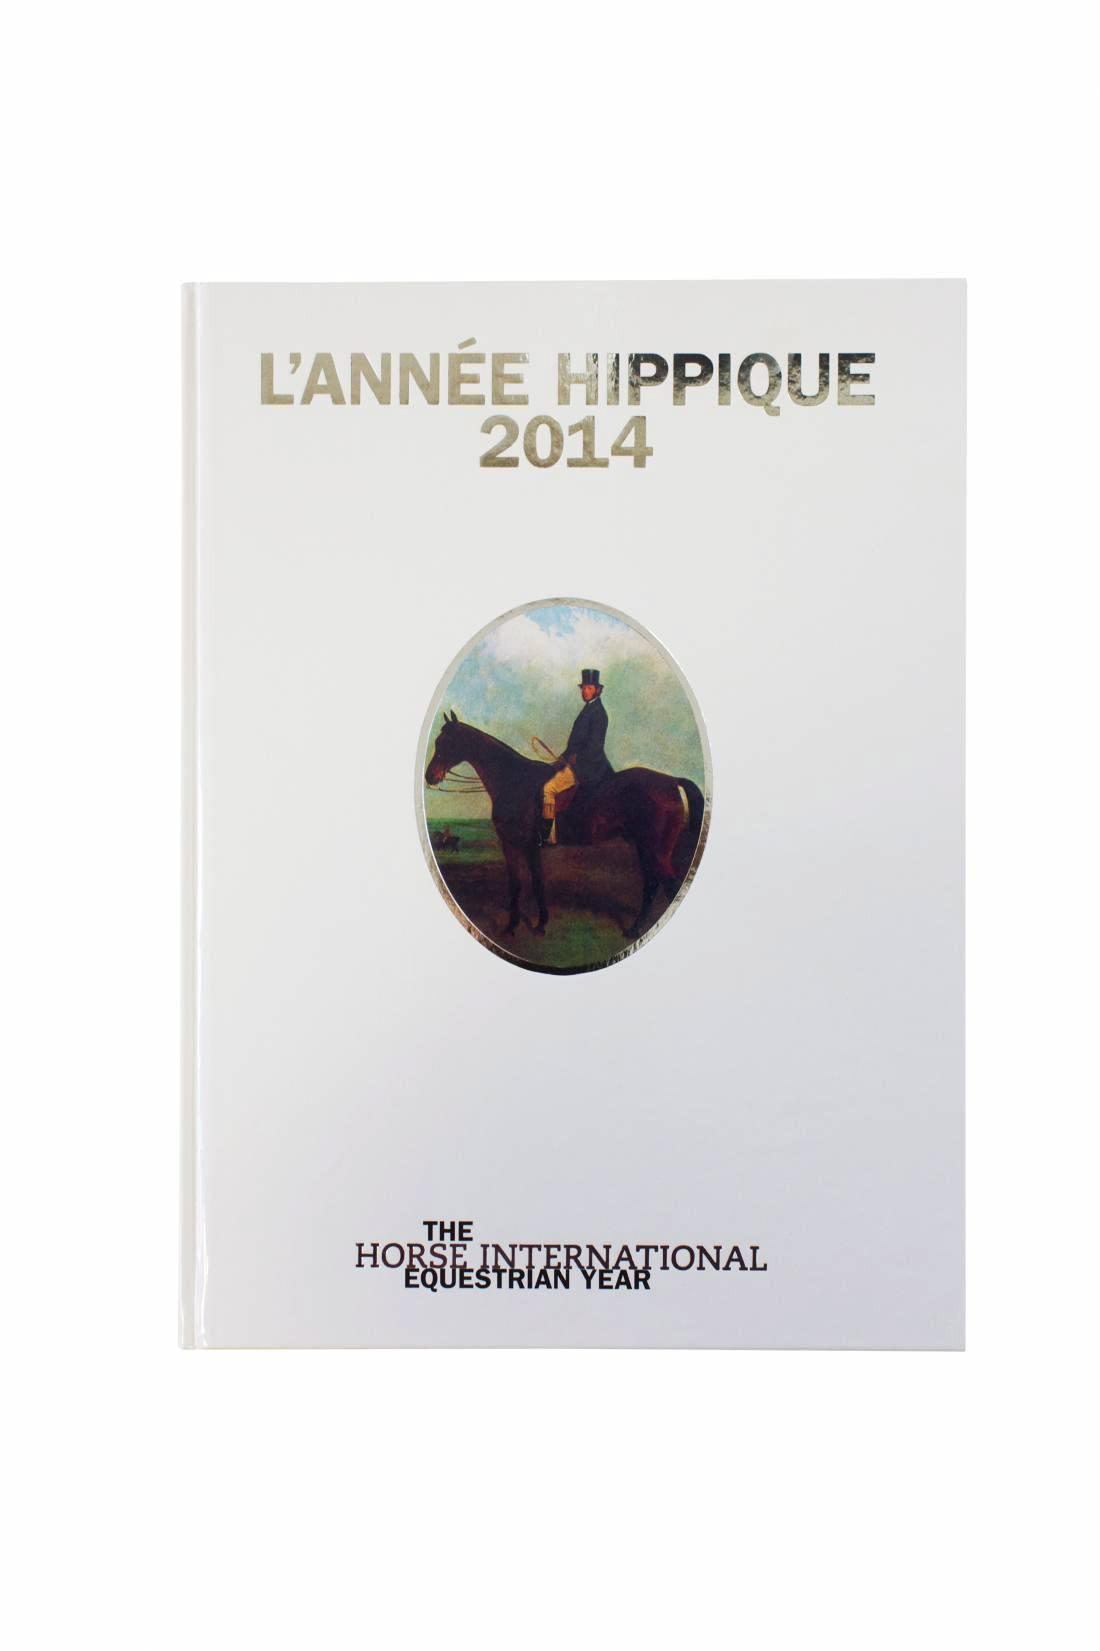 Book review: L'Annee Hippique 2014